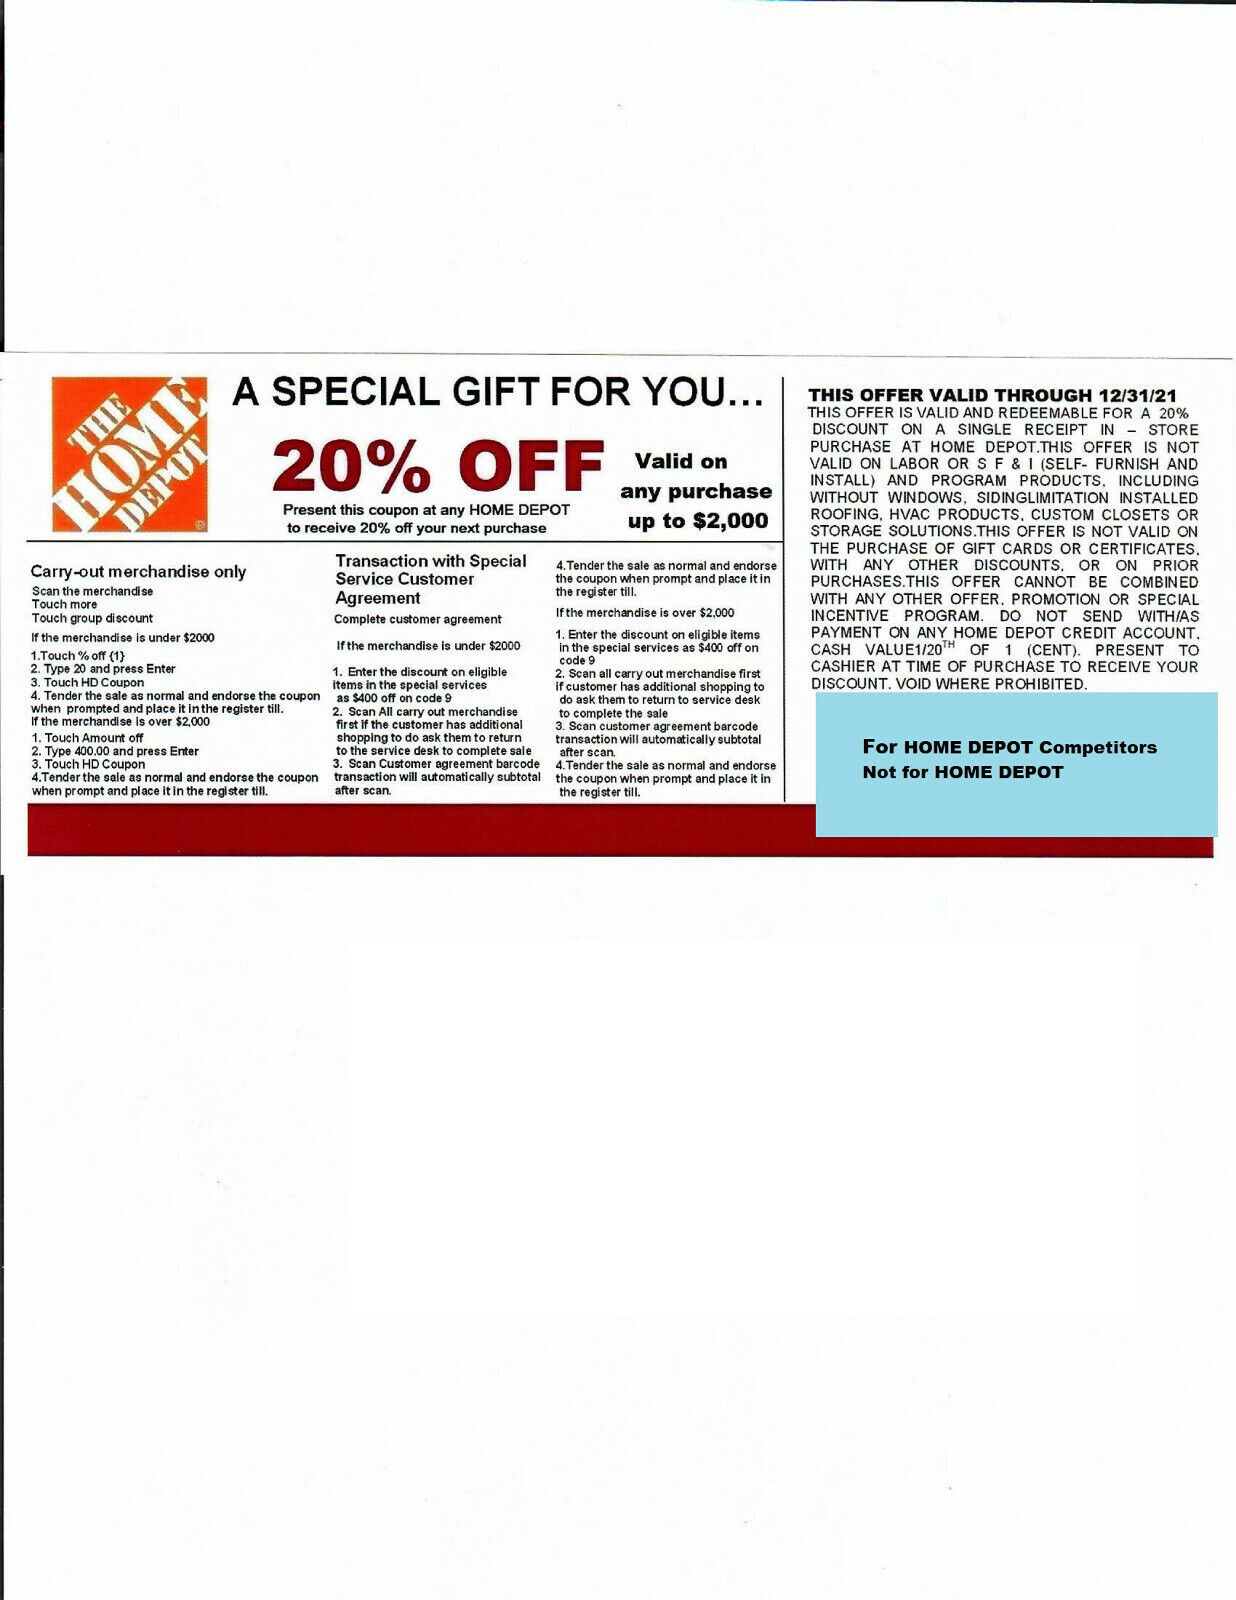 2 20 OFF HOME DEPOT Competitors Coupon Expires 12/31/21  - $10.00